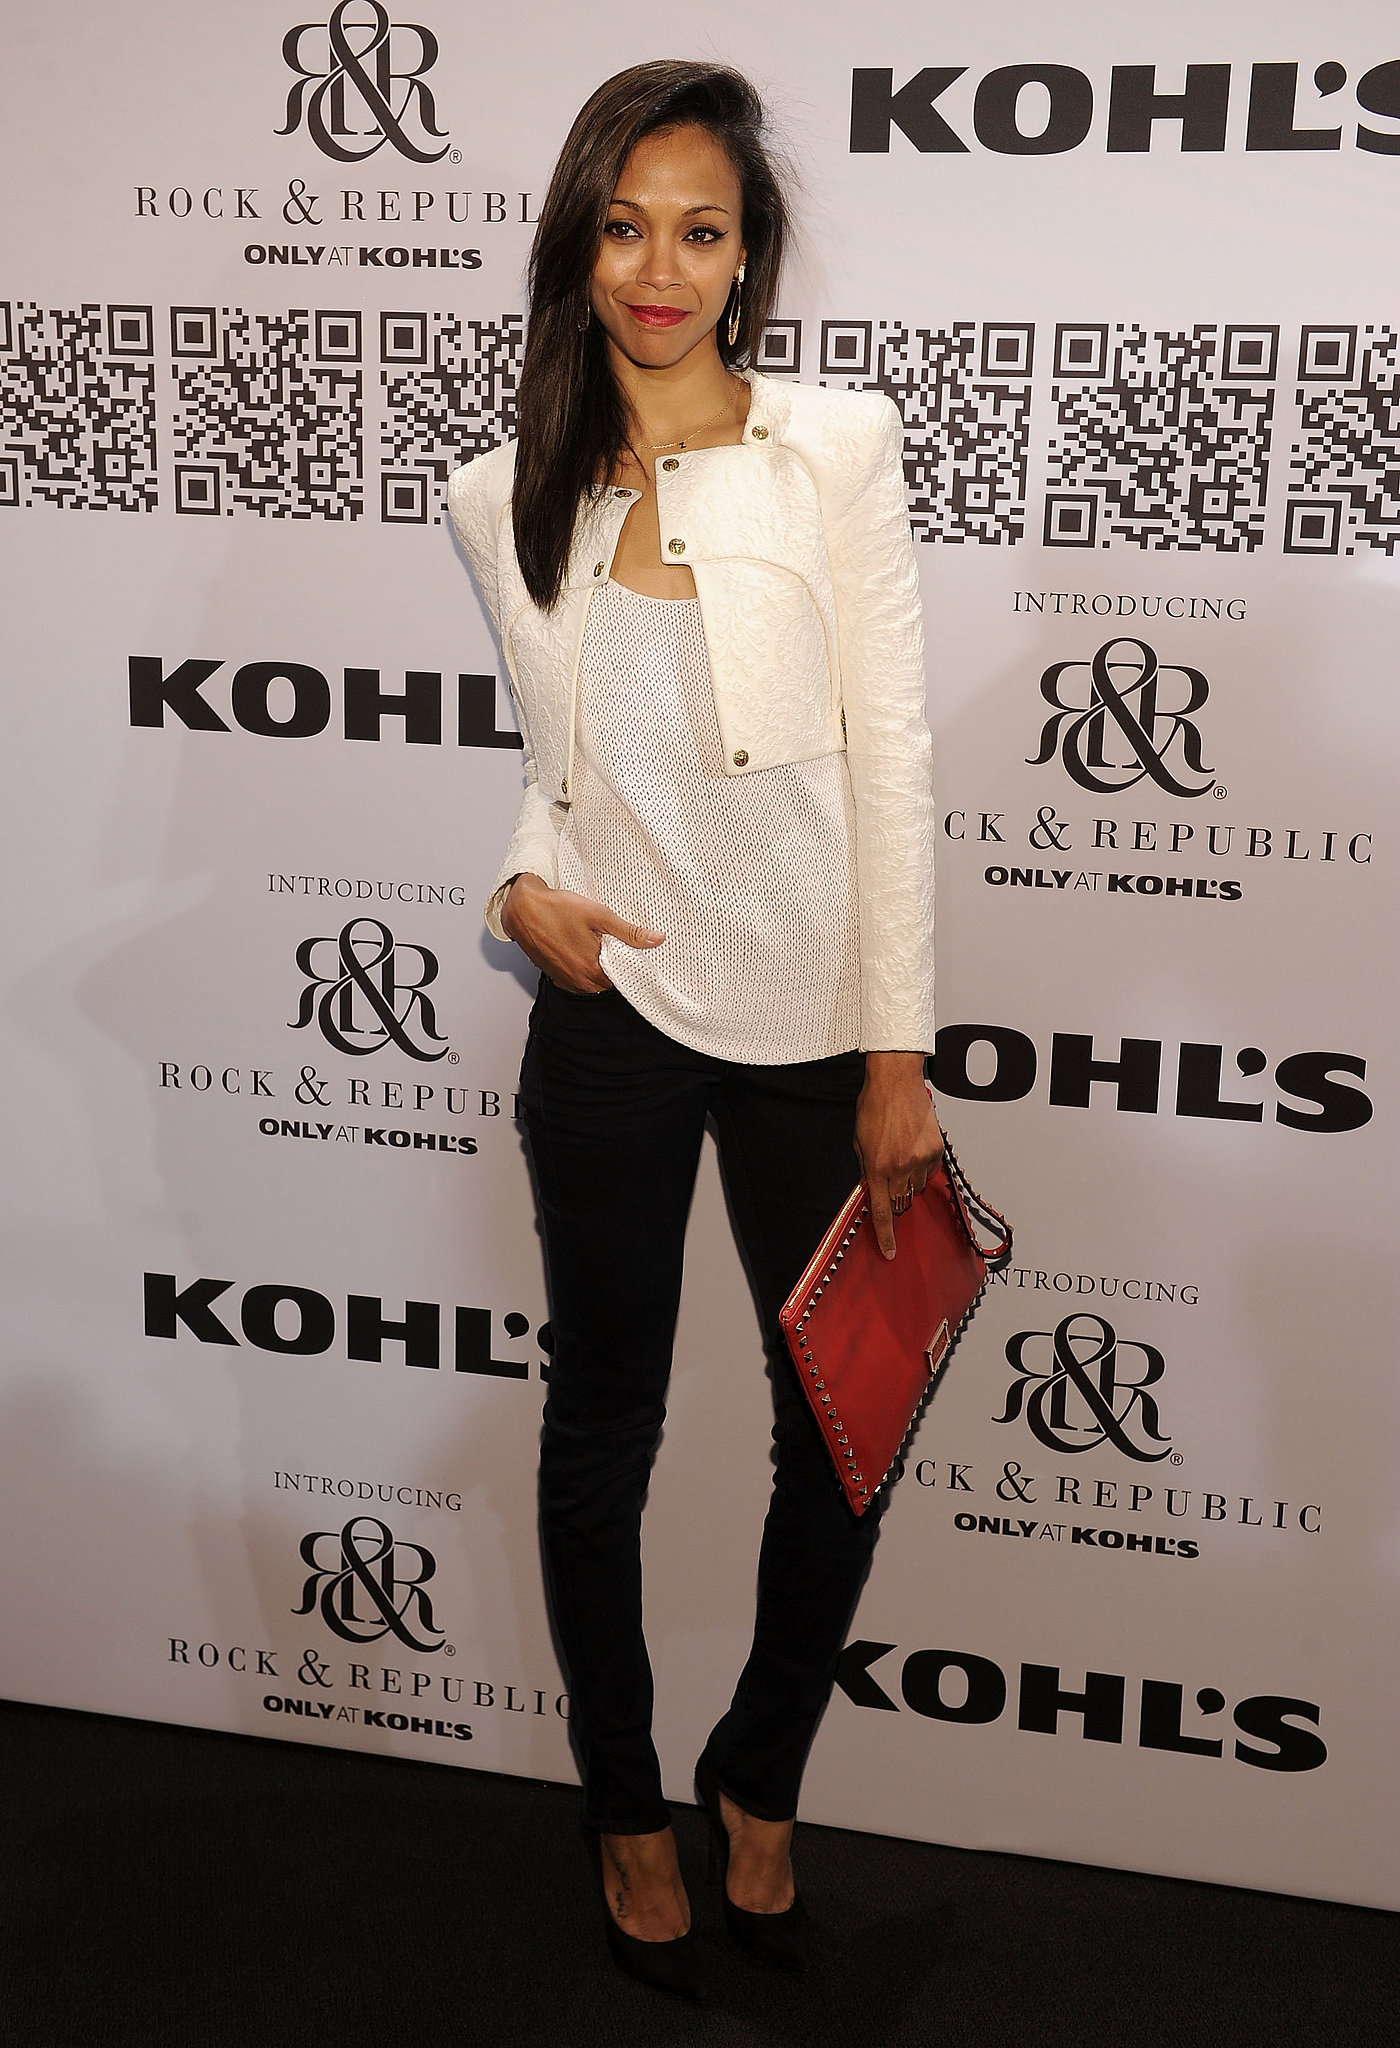 She accented her slick black and white ensemble with a fiery-red envelope clutch at Rock & Republic For Kohl's fashion show in February 2012.